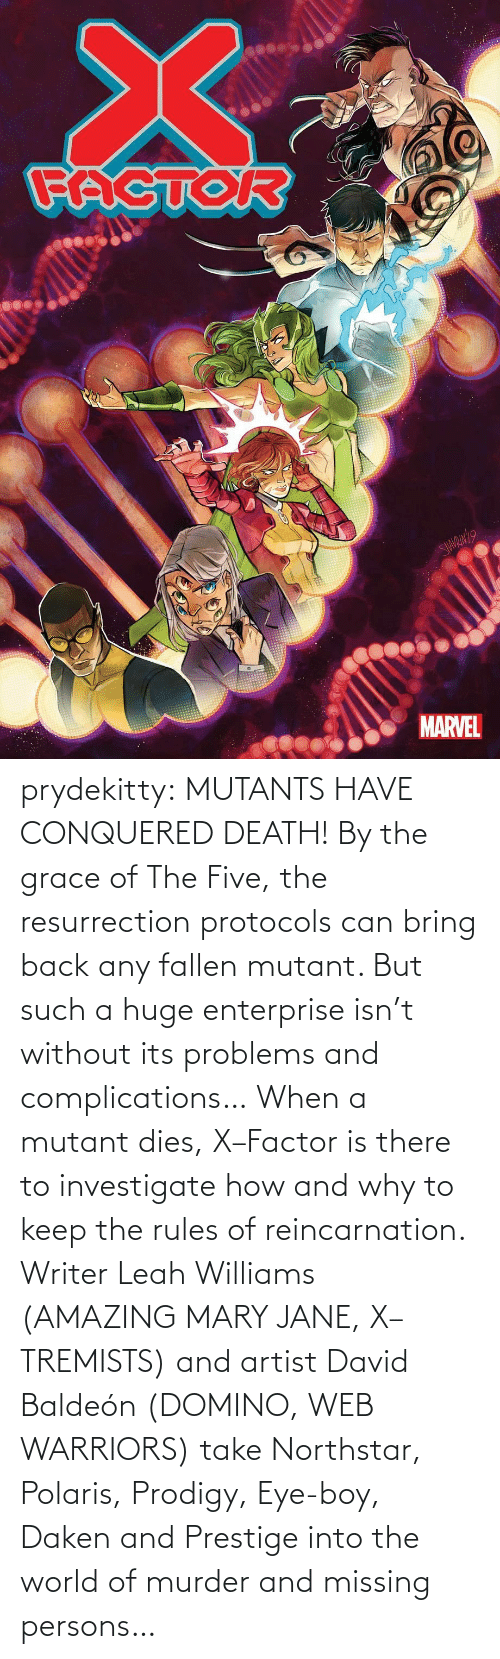 five: prydekitty:  MUTANTS HAVE CONQUERED DEATH! By the grace of The Five, the resurrection protocols can bring back any fallen mutant. But such a huge enterprise isn't without its problems and complications… When a mutant dies, X–Factor is there to investigate how and why to keep the rules of reincarnation. Writer Leah Williams (AMAZING MARY JANE, X–TREMISTS) and artist David Baldeón (DOMINO, WEB WARRIORS) take Northstar, Polaris, Prodigy, Eye-boy, Daken and Prestige into the world of murder and missing persons…